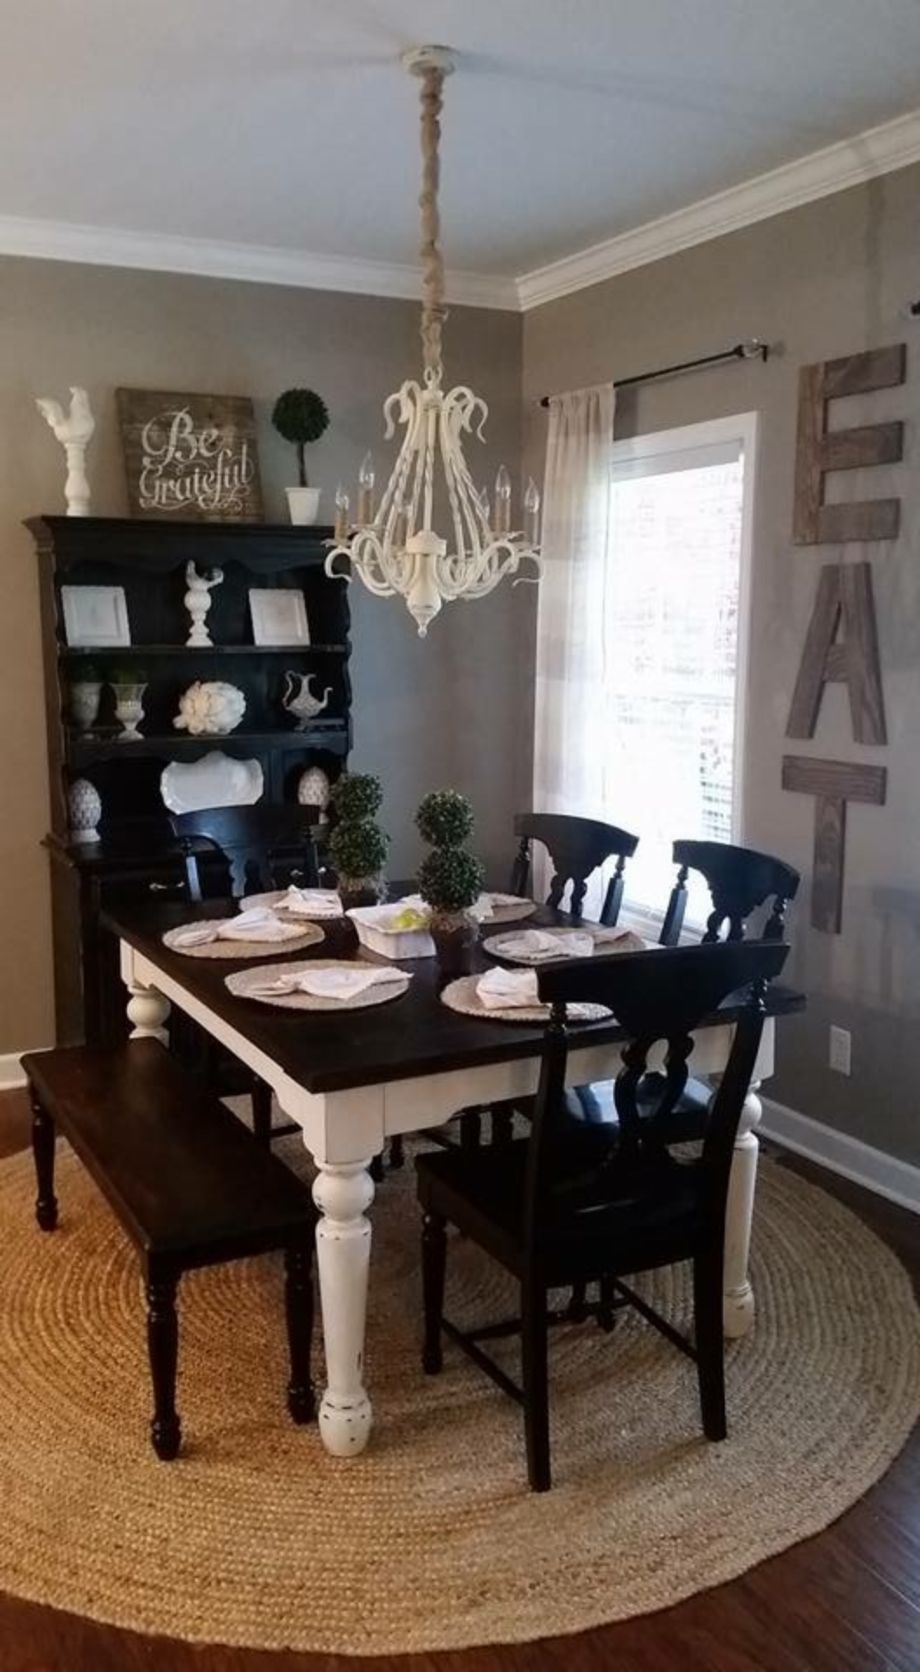 Cool 100 Stunning DIY Rustic Farmhouse Table